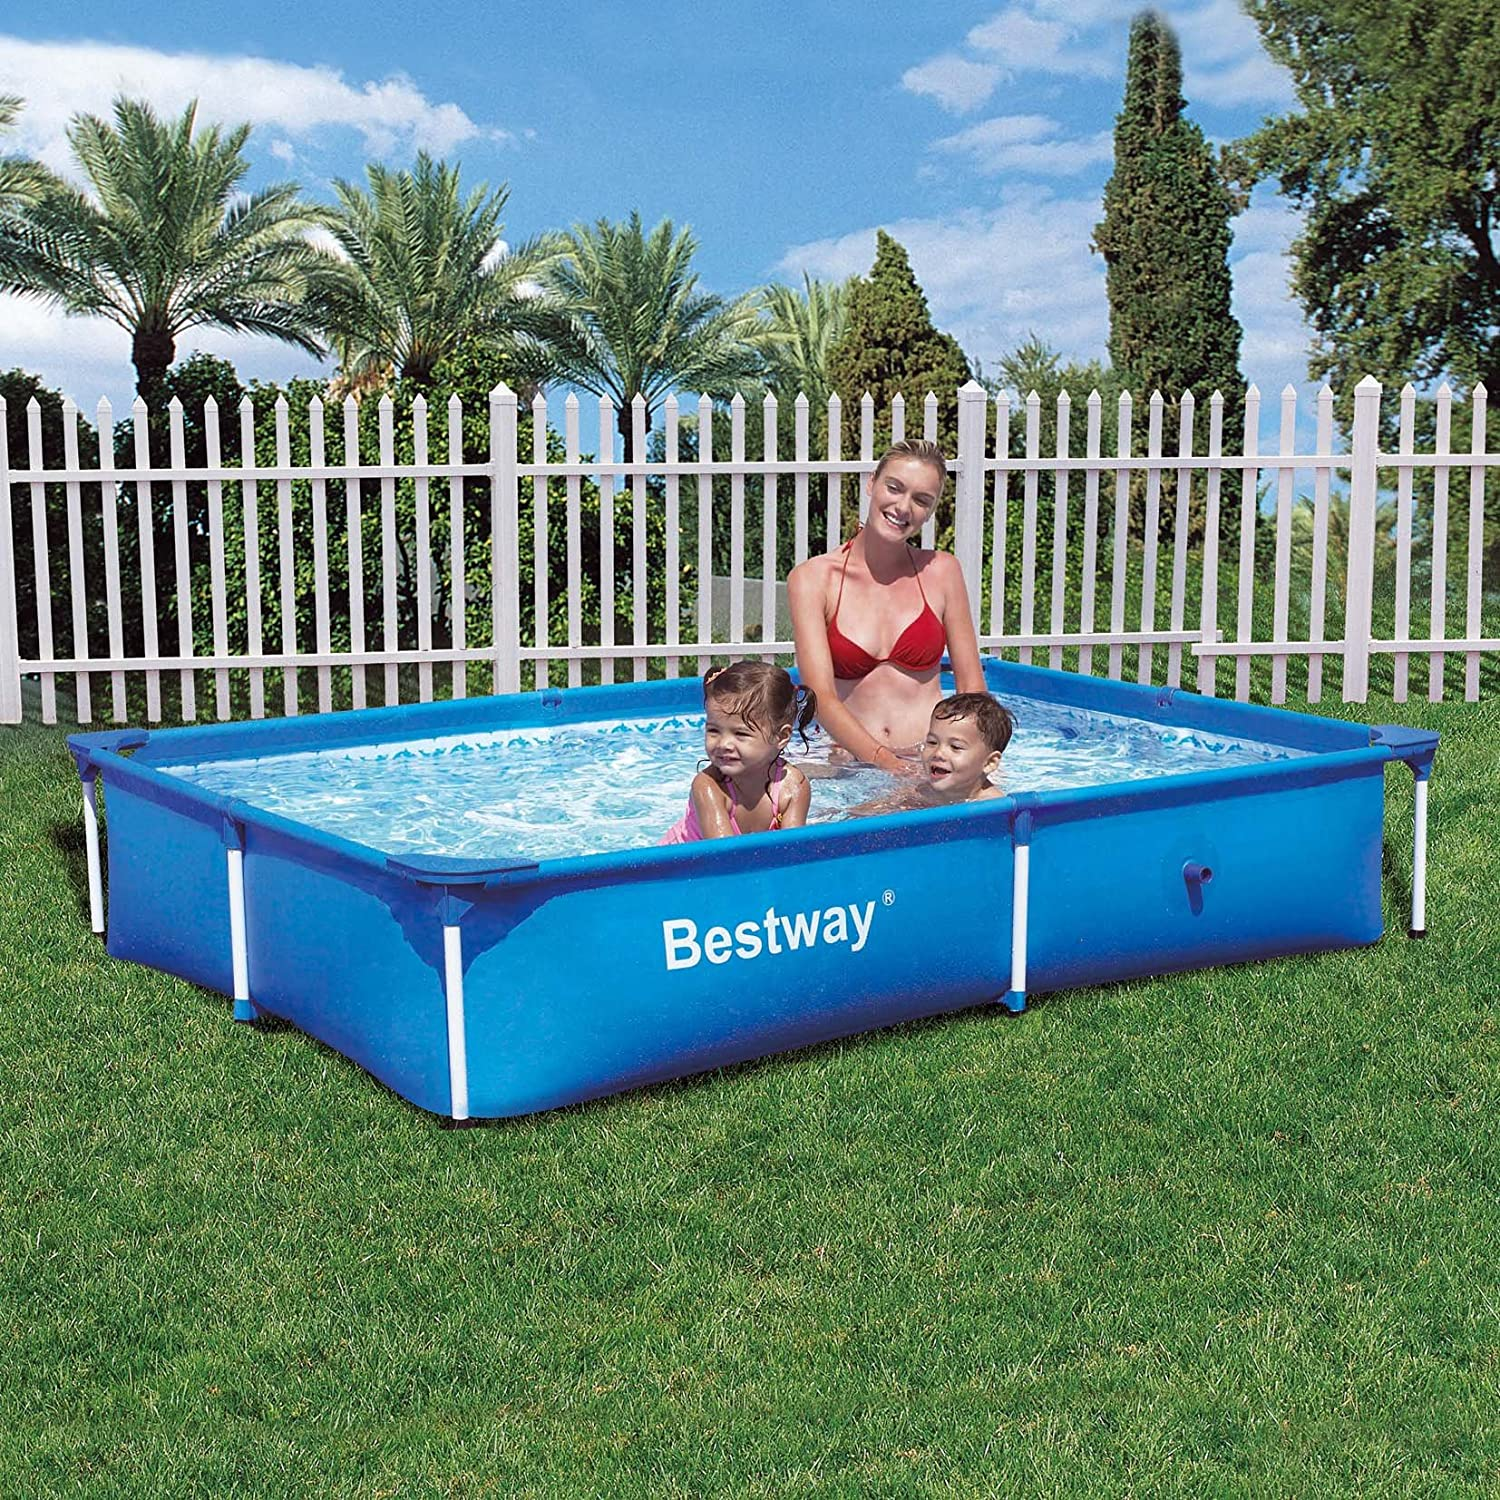 Bestway Piscina Piscina con anillo hinchable Rectangular